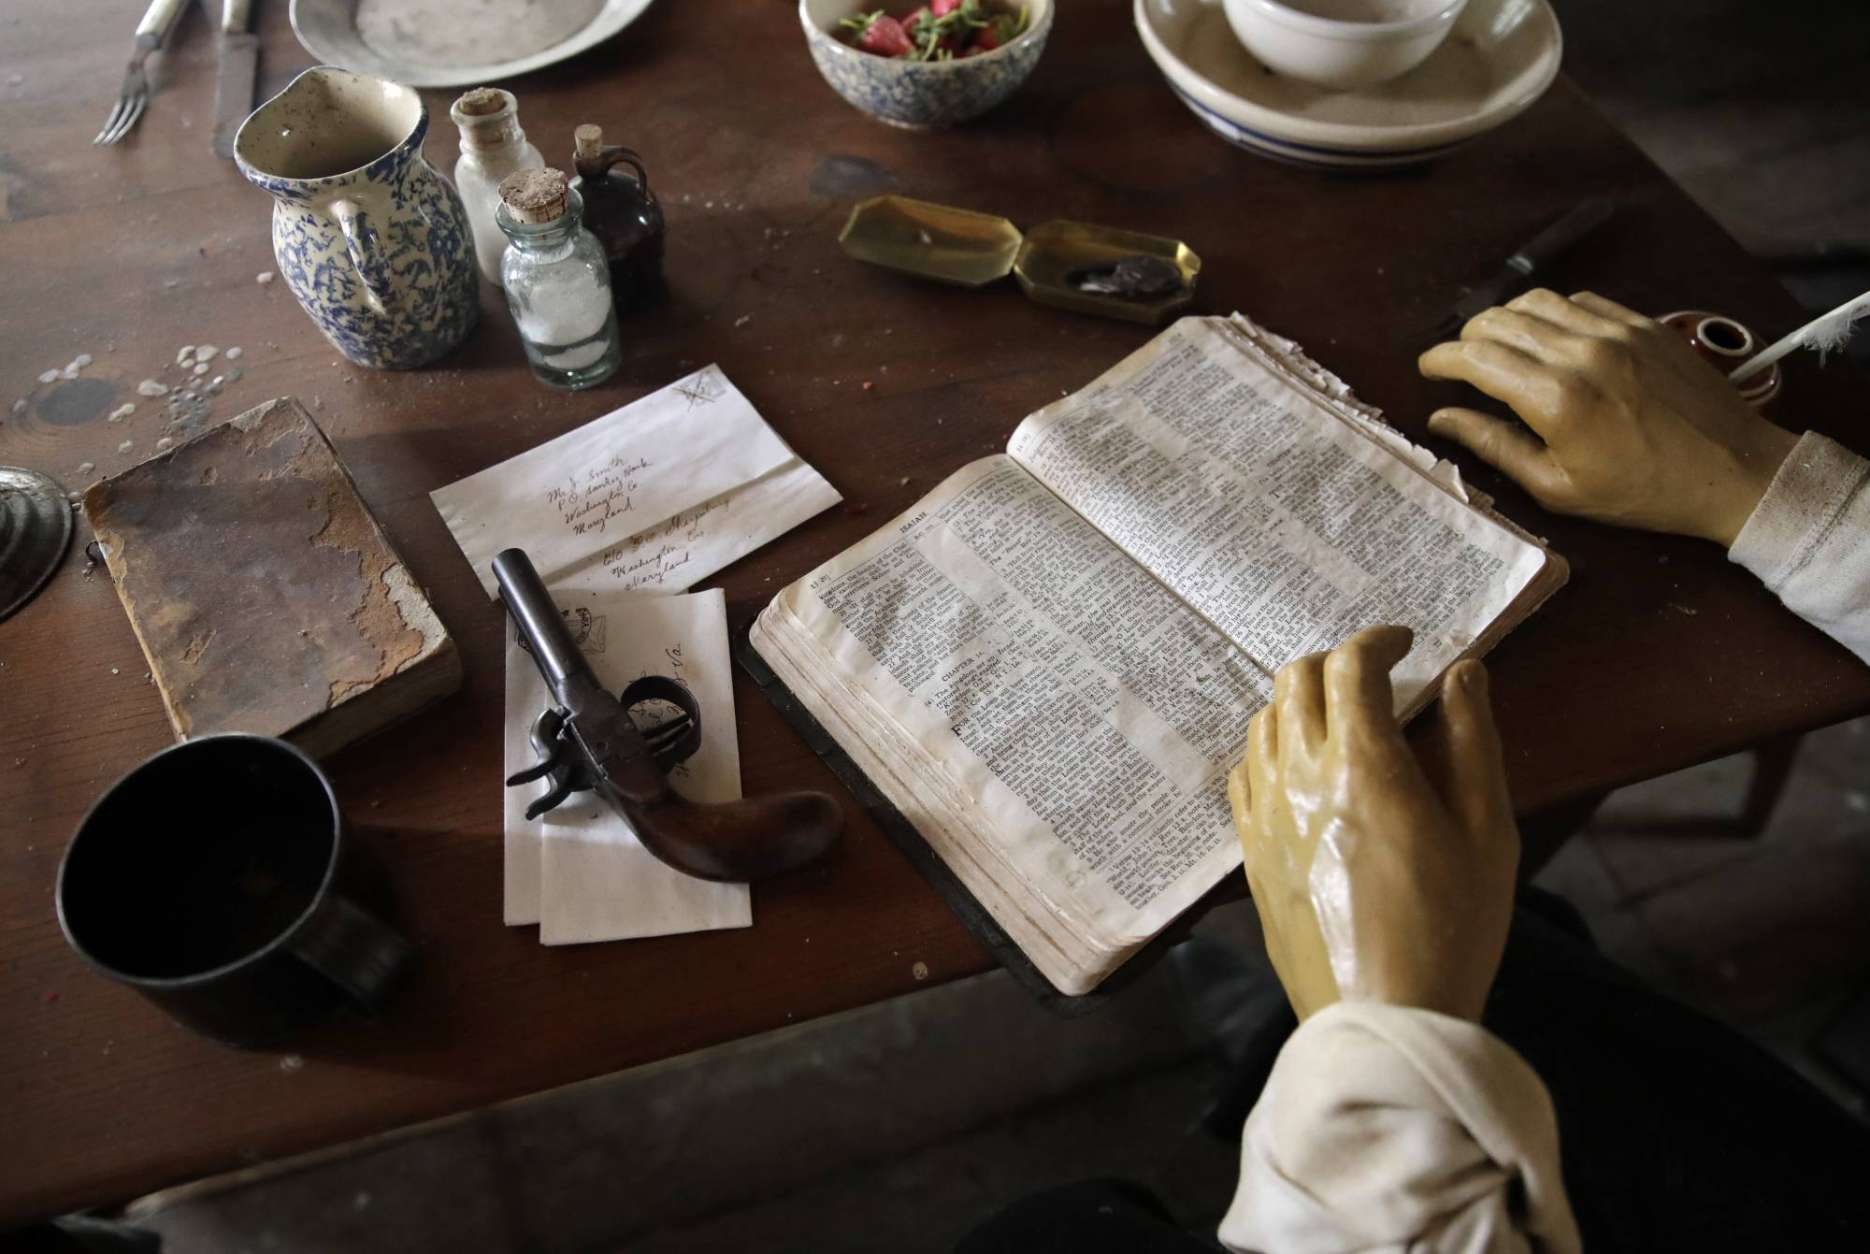 In this Feb. 8, 2017 photo, a gun, a bible and other items sit in front of a mannequin depicting abolitionist John Brown, right, in the restored farmhouse where Brown launched his ill-fated, 1859 seizure of a federal armory in Dargan, Md. Historians cite the failed raid by Brown and 18 fervent followers in nearby Harpers Ferry, W.Va., as the opening salvo in the Civil War because it incited strong passions, especially in the slave-holding South. The farmhouse was designated a national historic landmark in 1973. (AP Photo/Patrick Semansky)